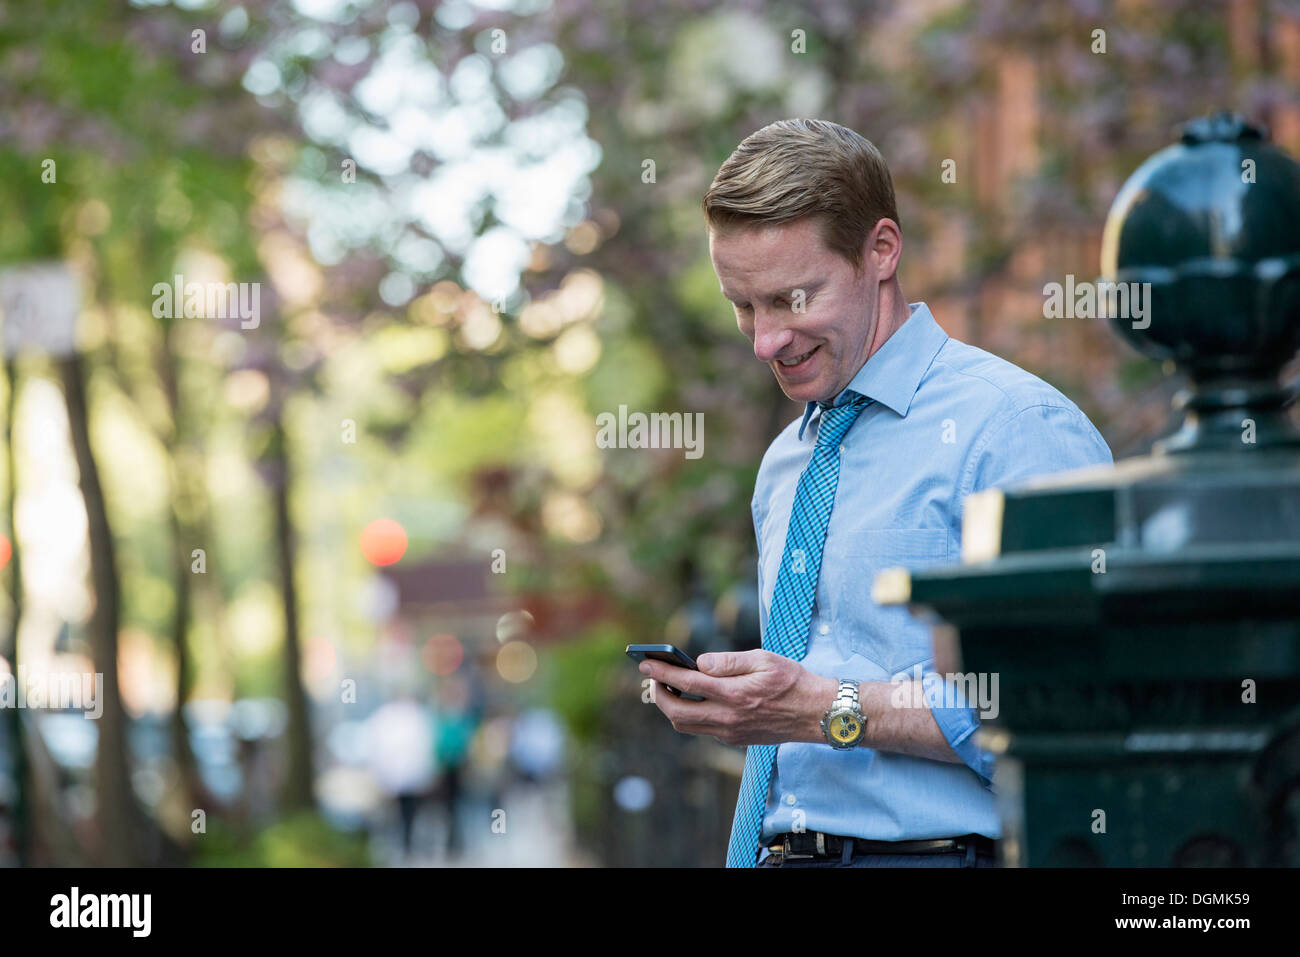 A man in a business shirt and tie, looking down and checking his phone. - Stock Image